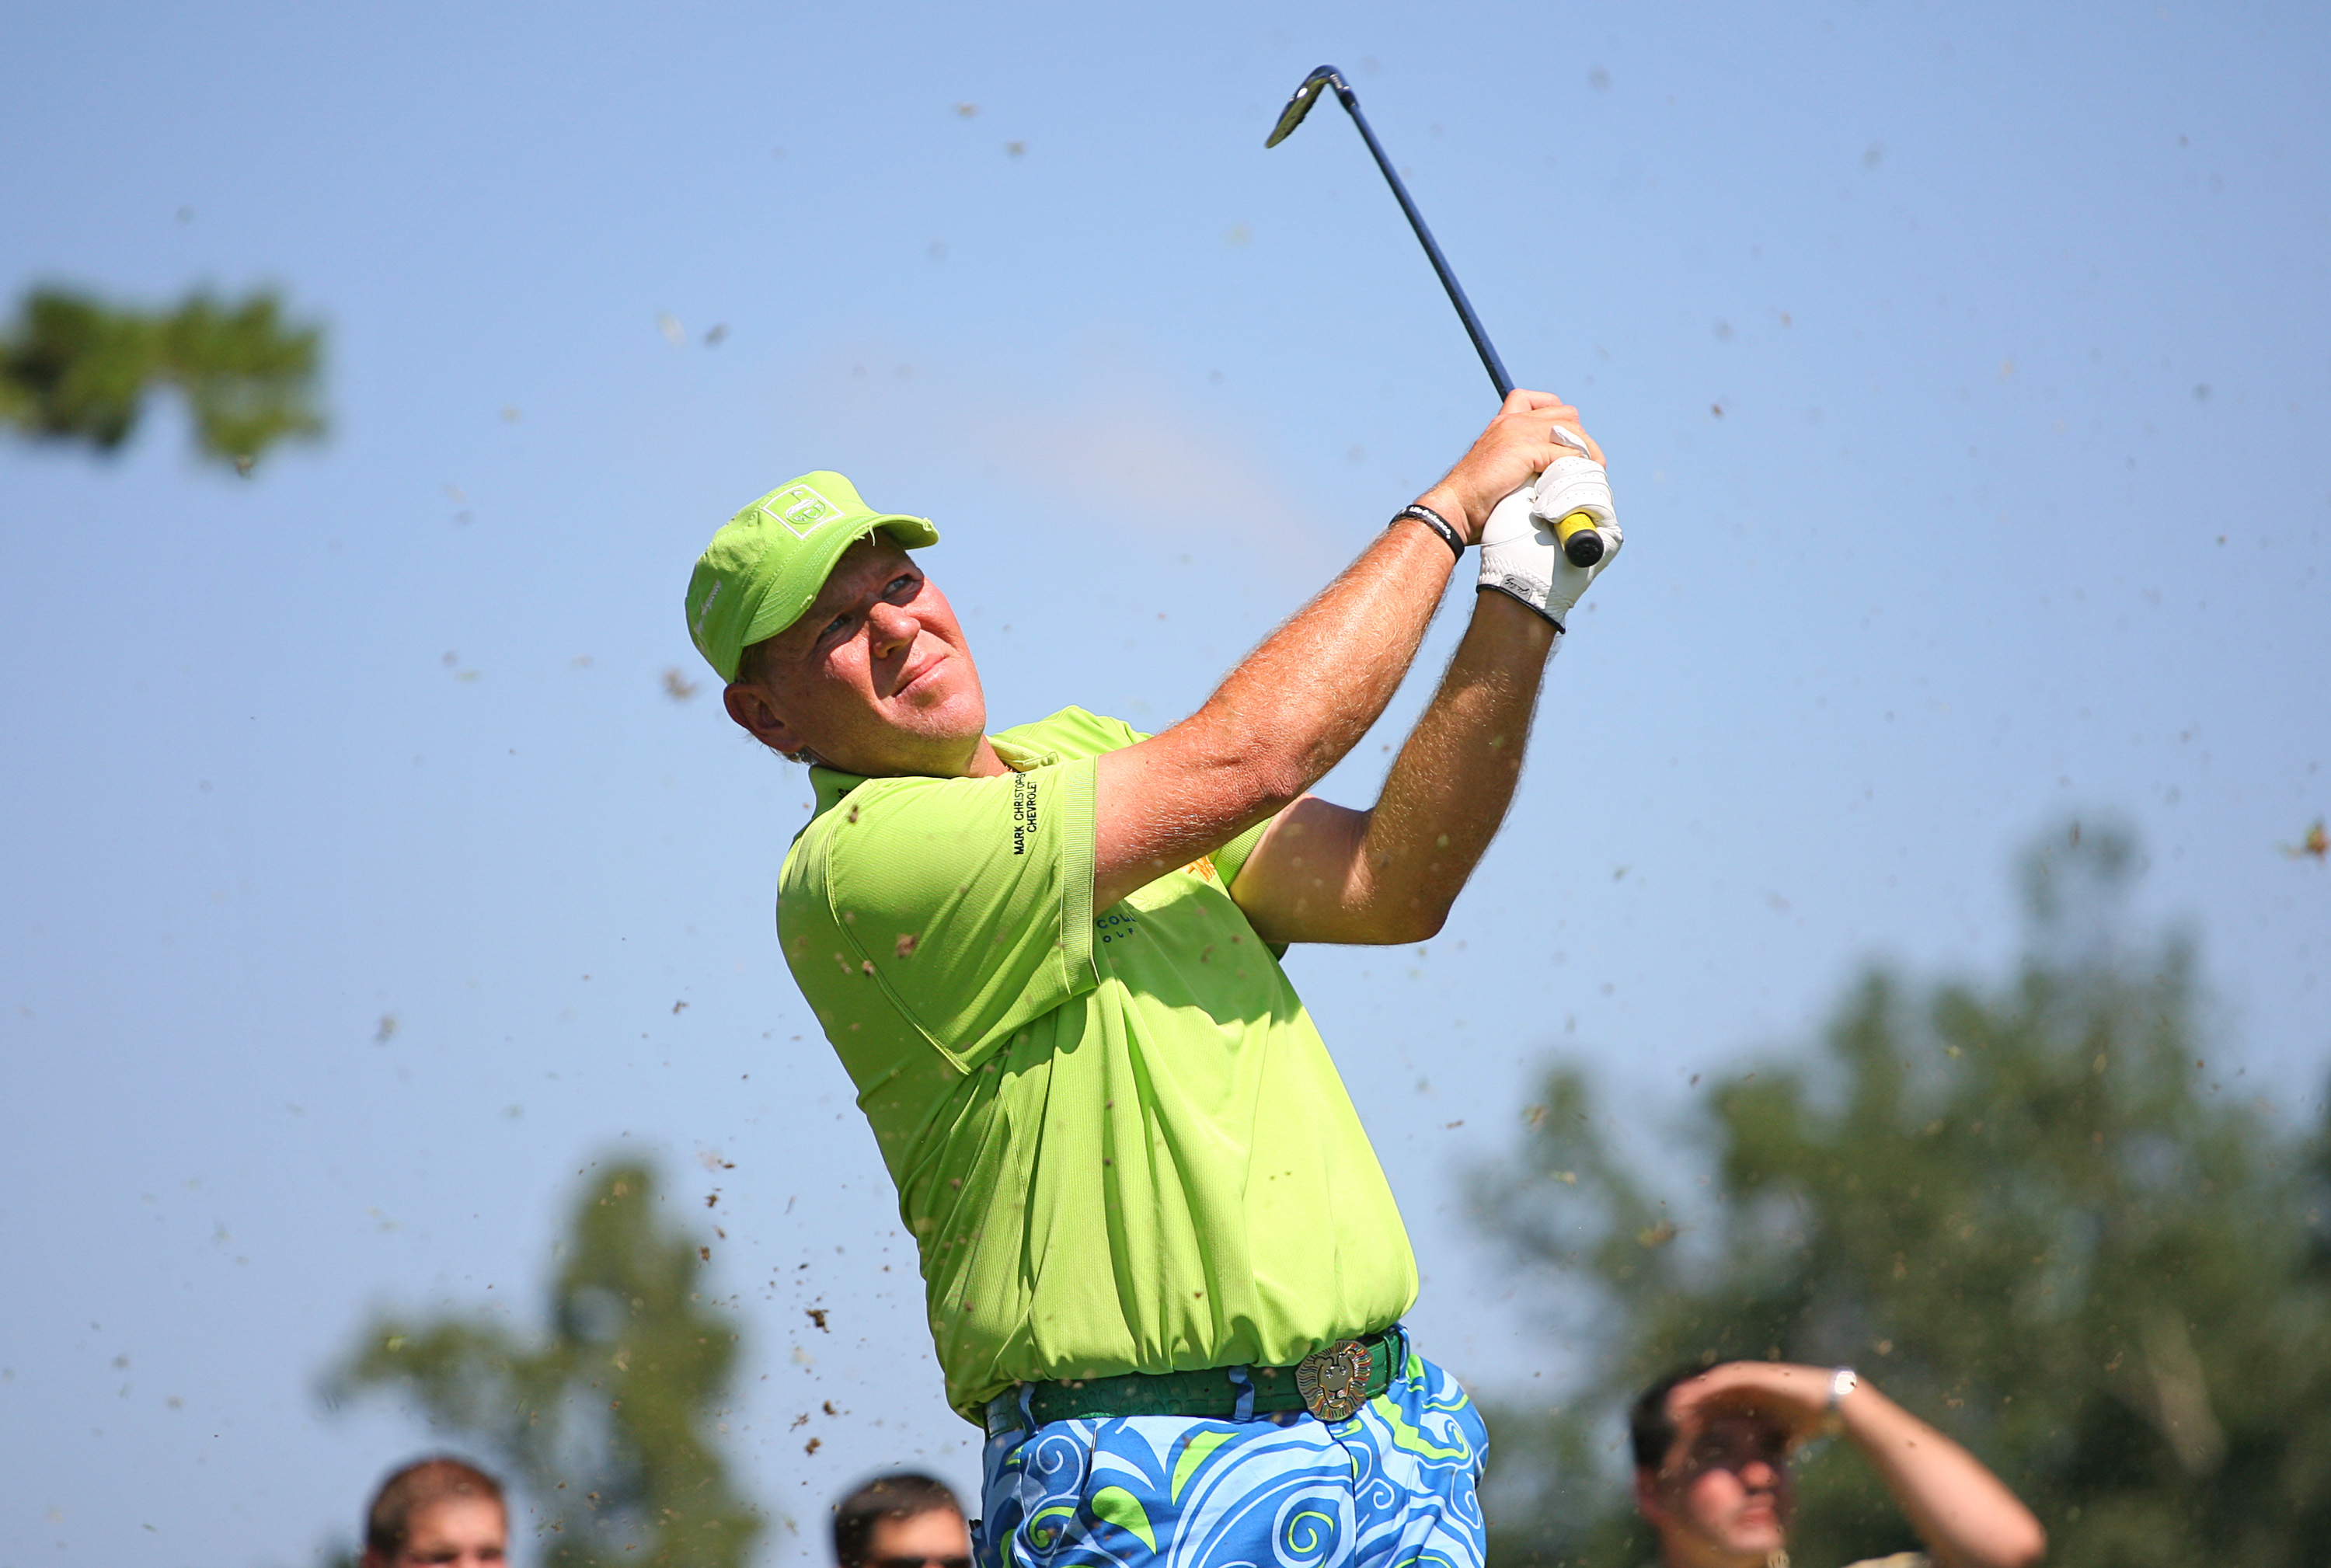 GREENSBORO, NC - AUGUST 20: John Daly hits his tee shot on the 16th hole during the second round of the Wyndham  Championship at Sedgefield Country Club on August 20, 2010 in Greensboro, North Carolina. (Photo by Hunter Martin/Getty Images)